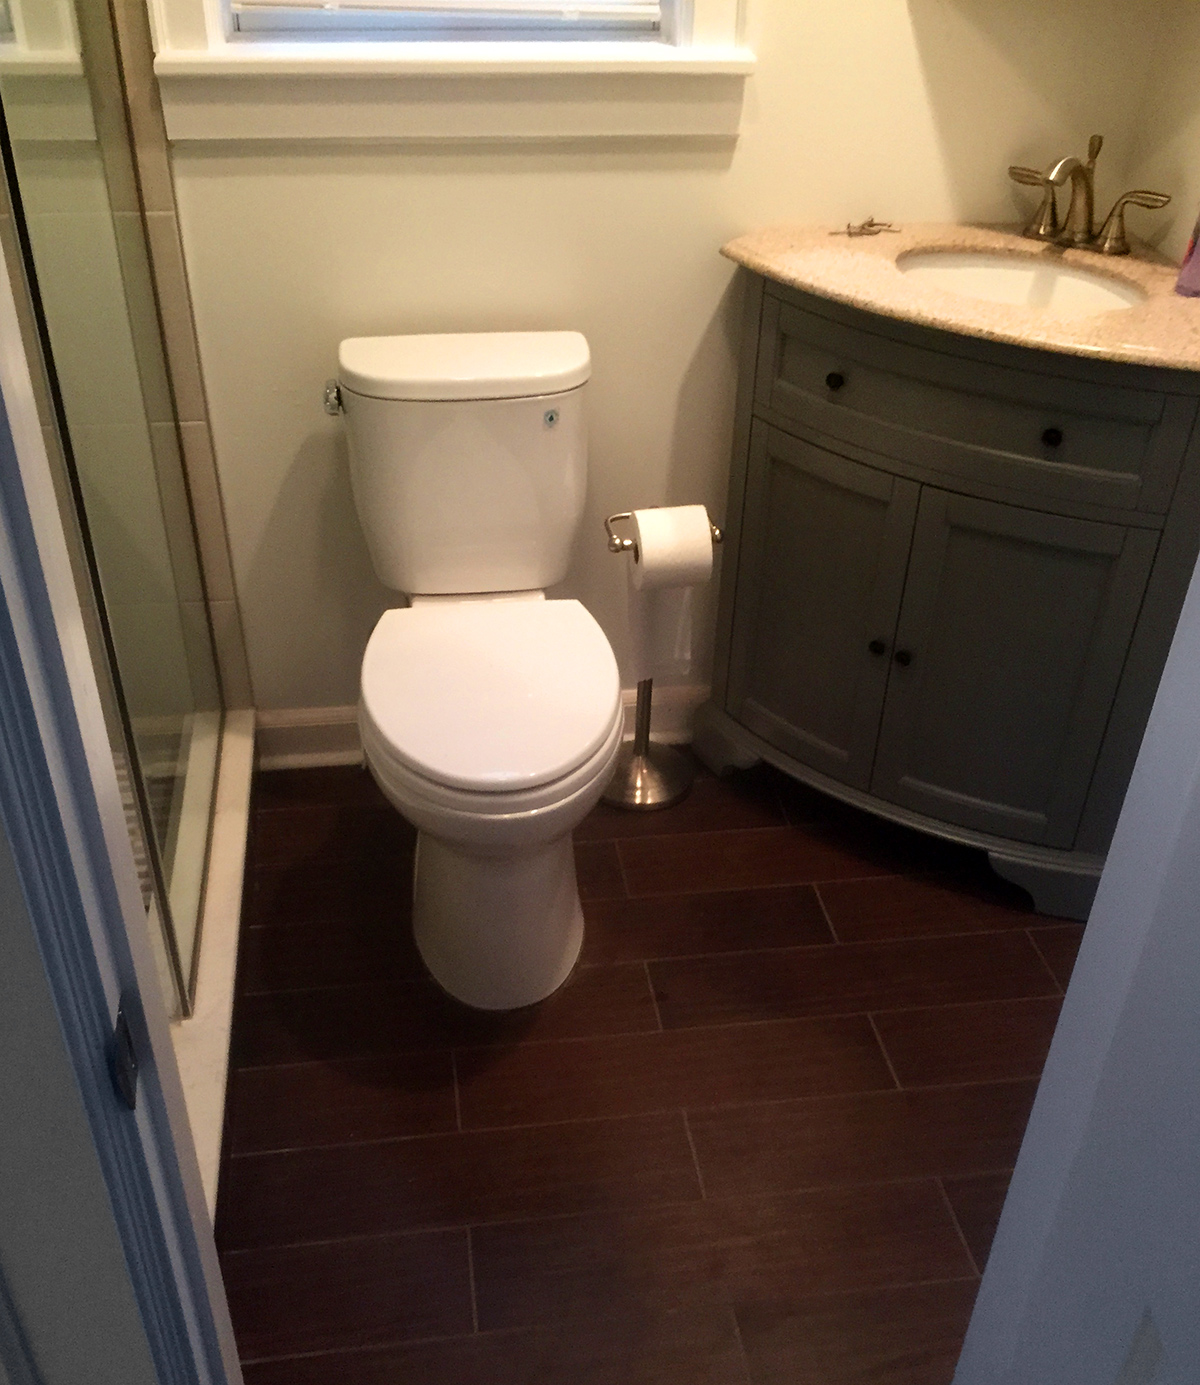 Bathroom Remodel New York Contractor A D Ford Construction